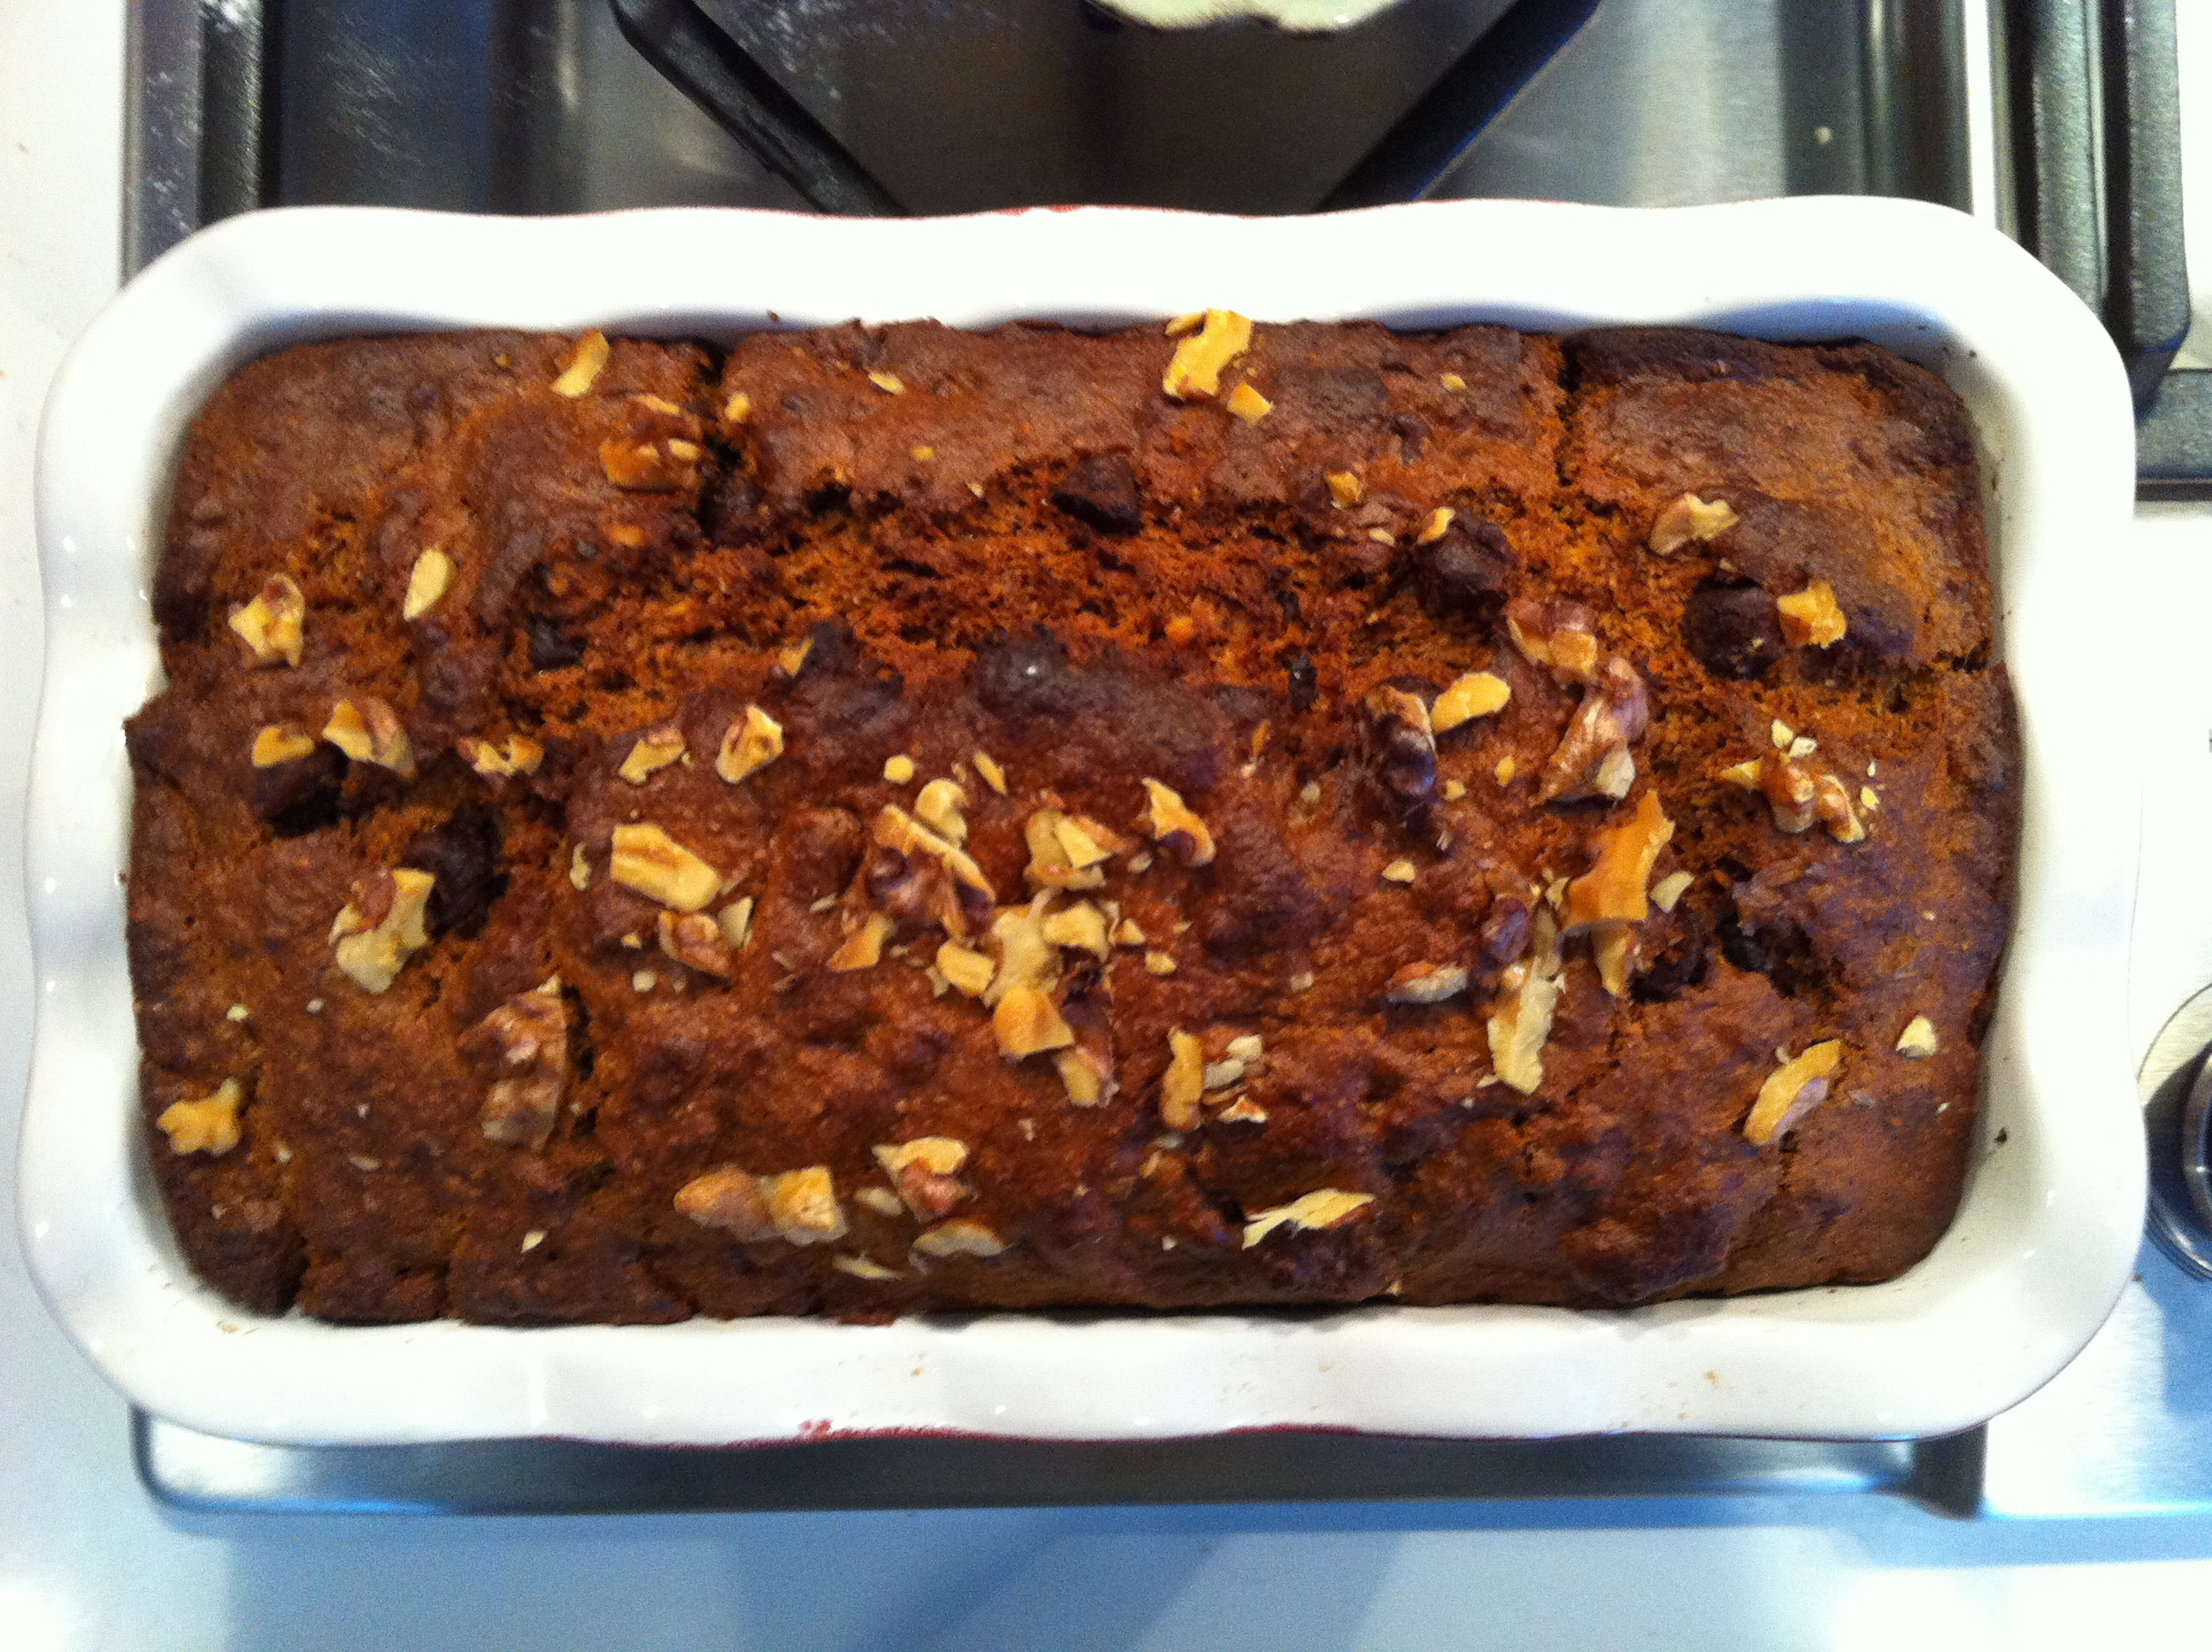 This banana bread is healthy and delicious!